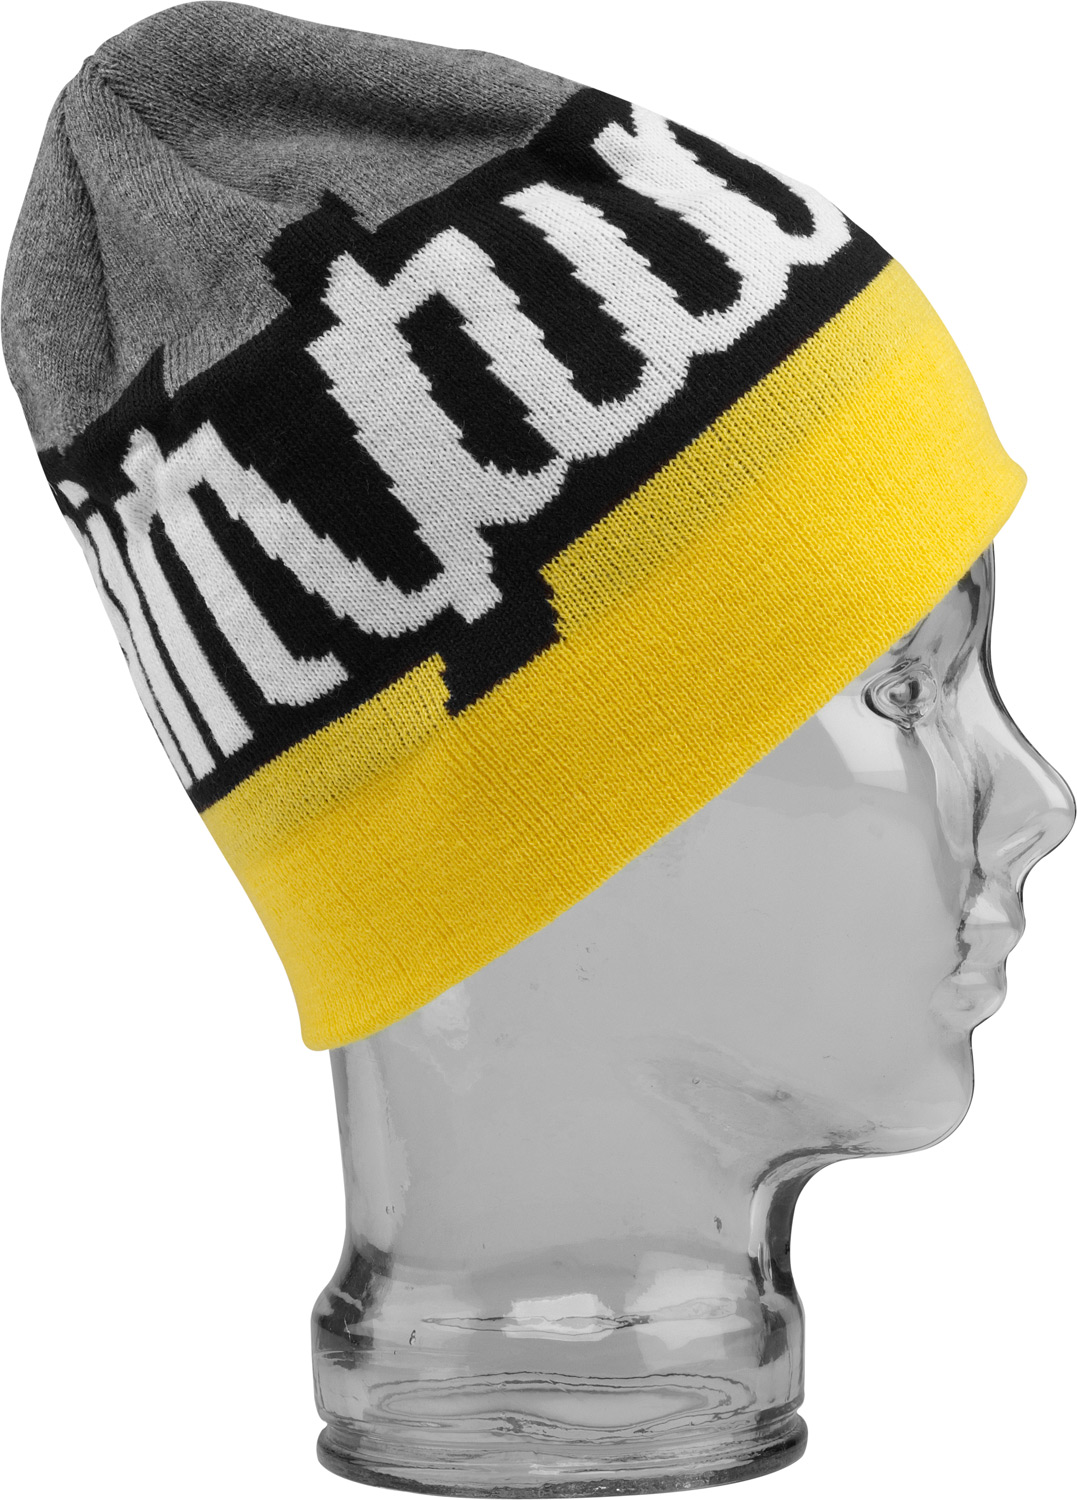 Key Features of the 32 - Thirty Two Fifty Fifty Beanie: 100% acrylic colorblocked beanie with jacquard double logo - $17.95